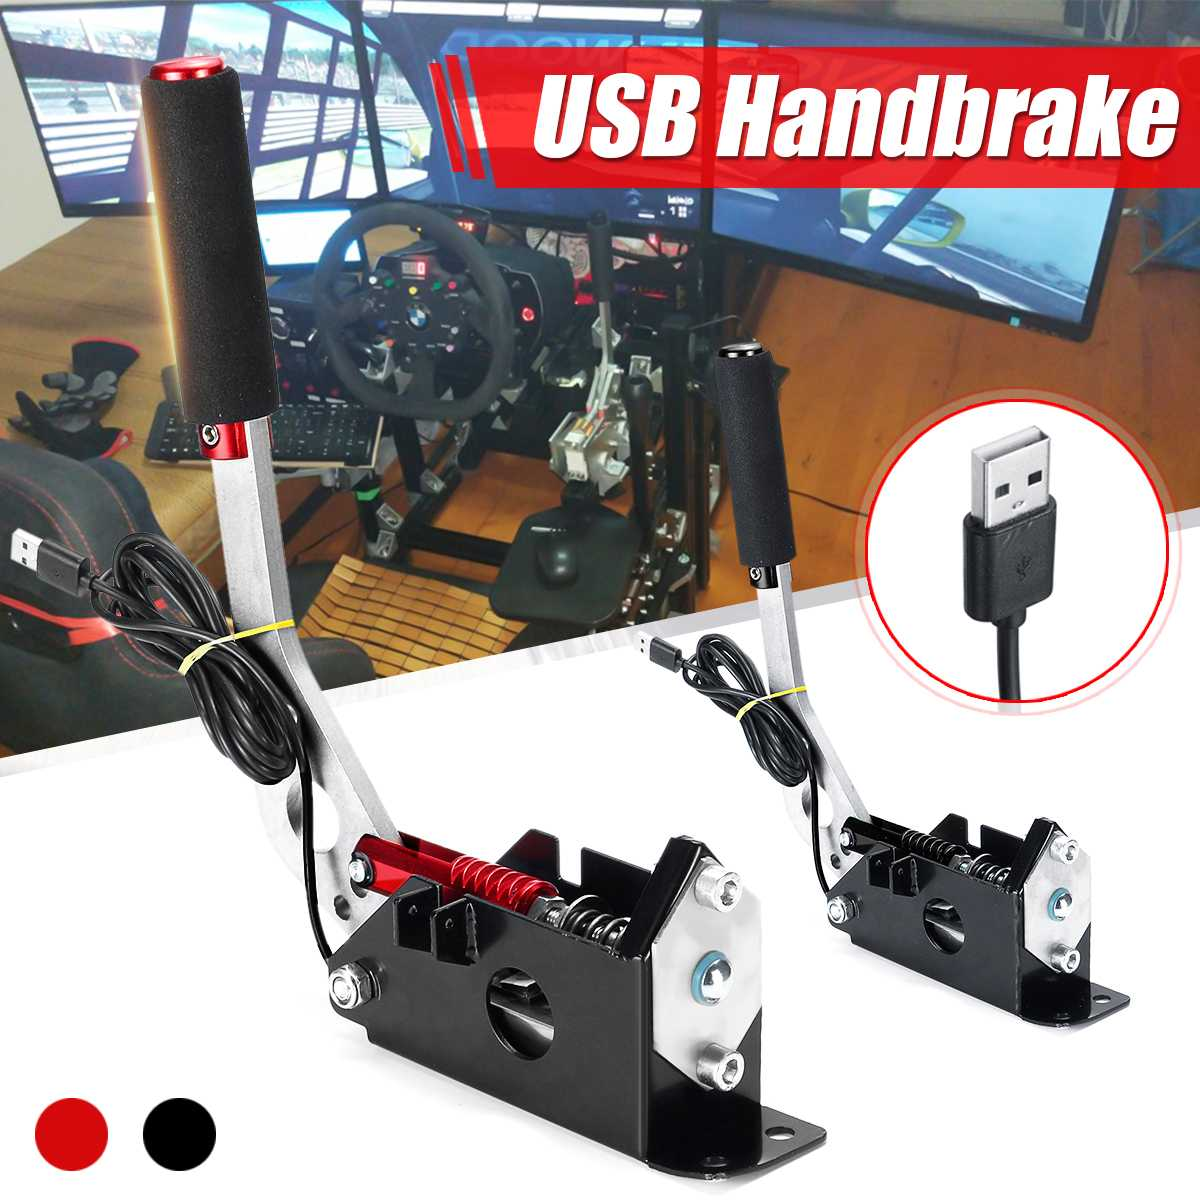 USB Handbrake Clamp PC Windows for Sim Racing Game for Logitech G25 G27 G29 T500 T300 FANATECOSW for LFS DIRT RALLY image